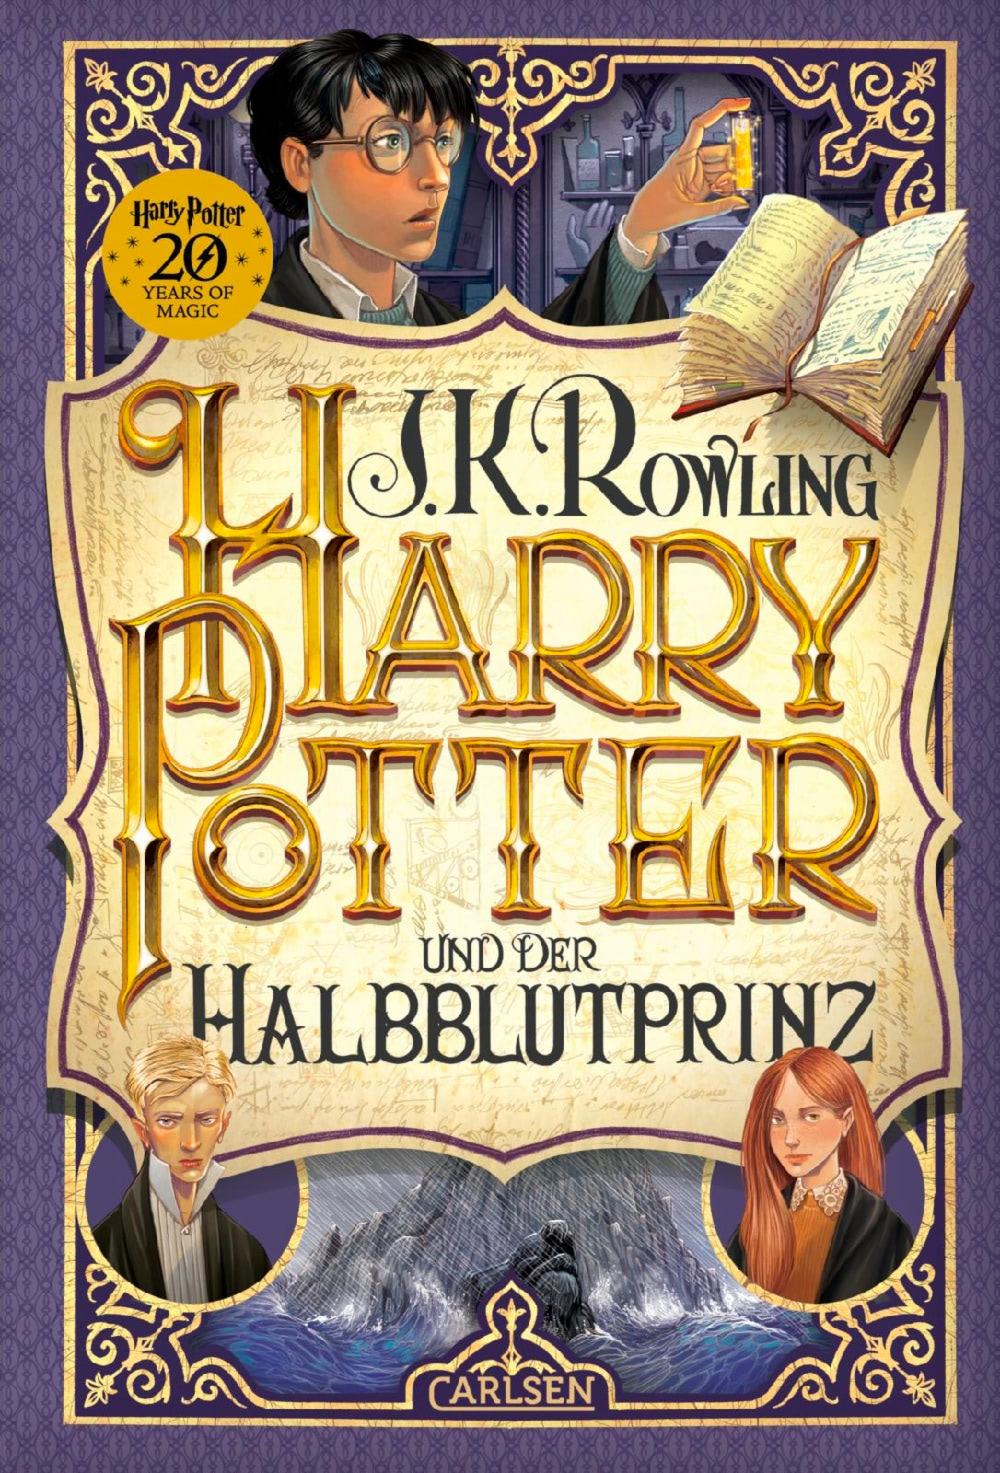 'Half-Blood Prince' German '20 Years of Magic' edition